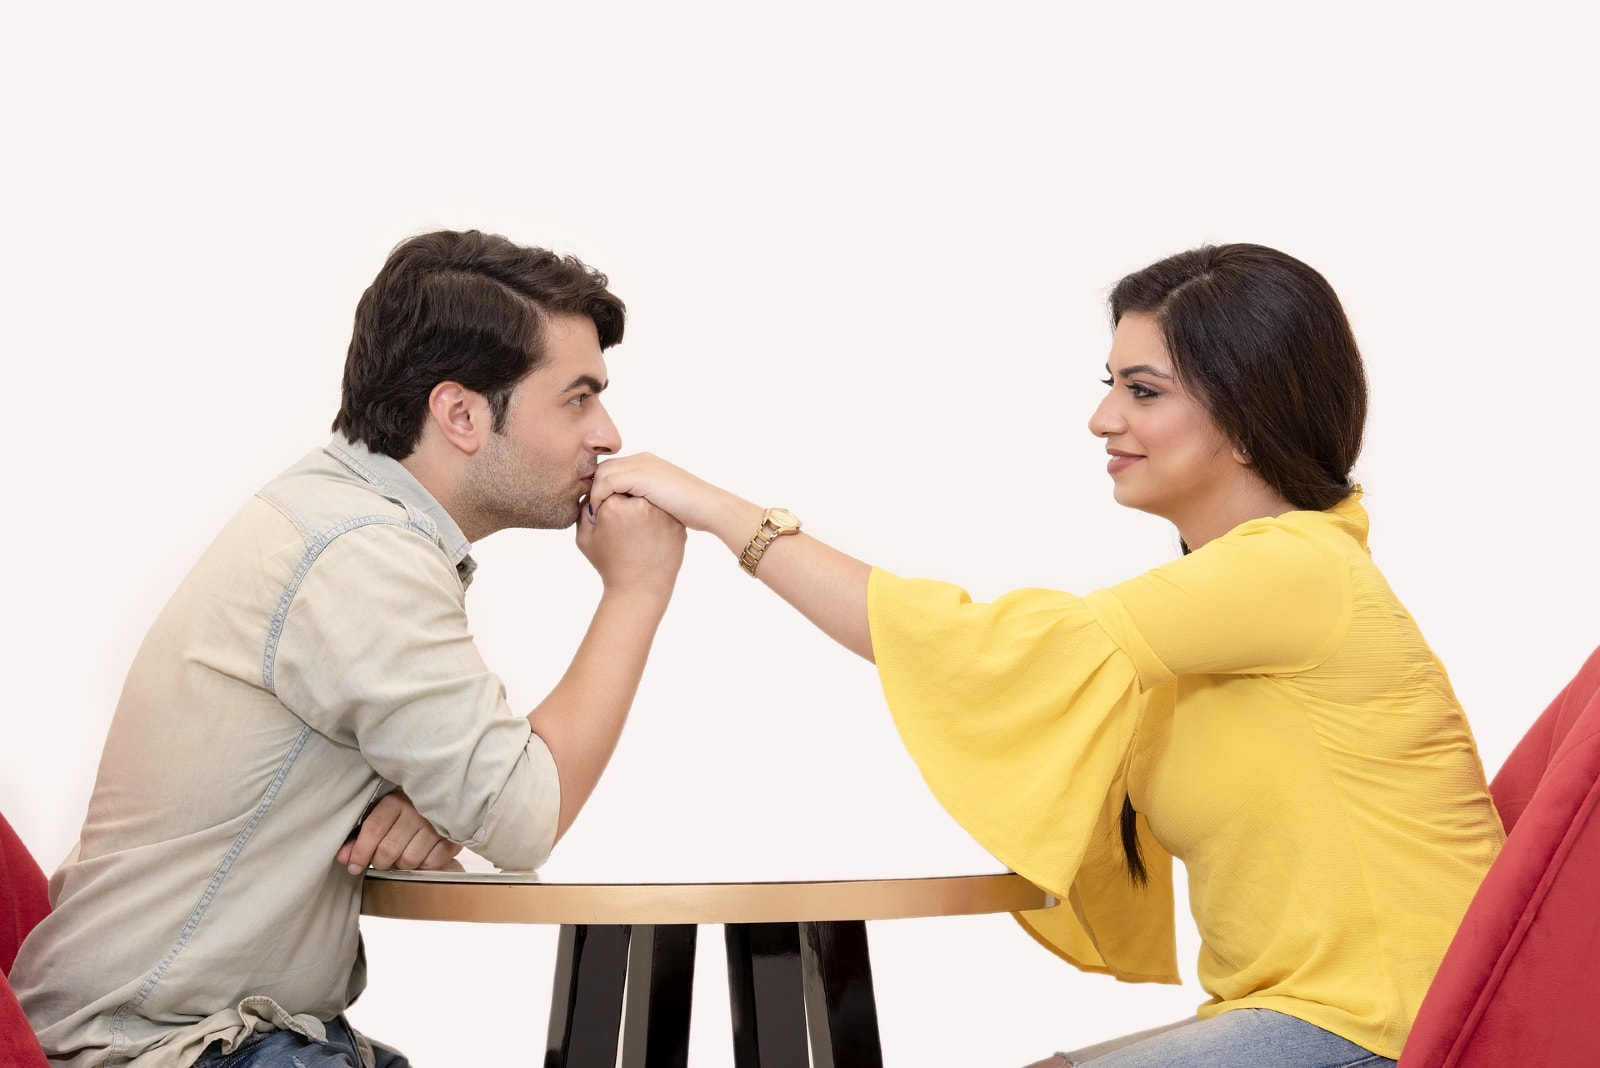 man kissing woman's hand while sitting at table